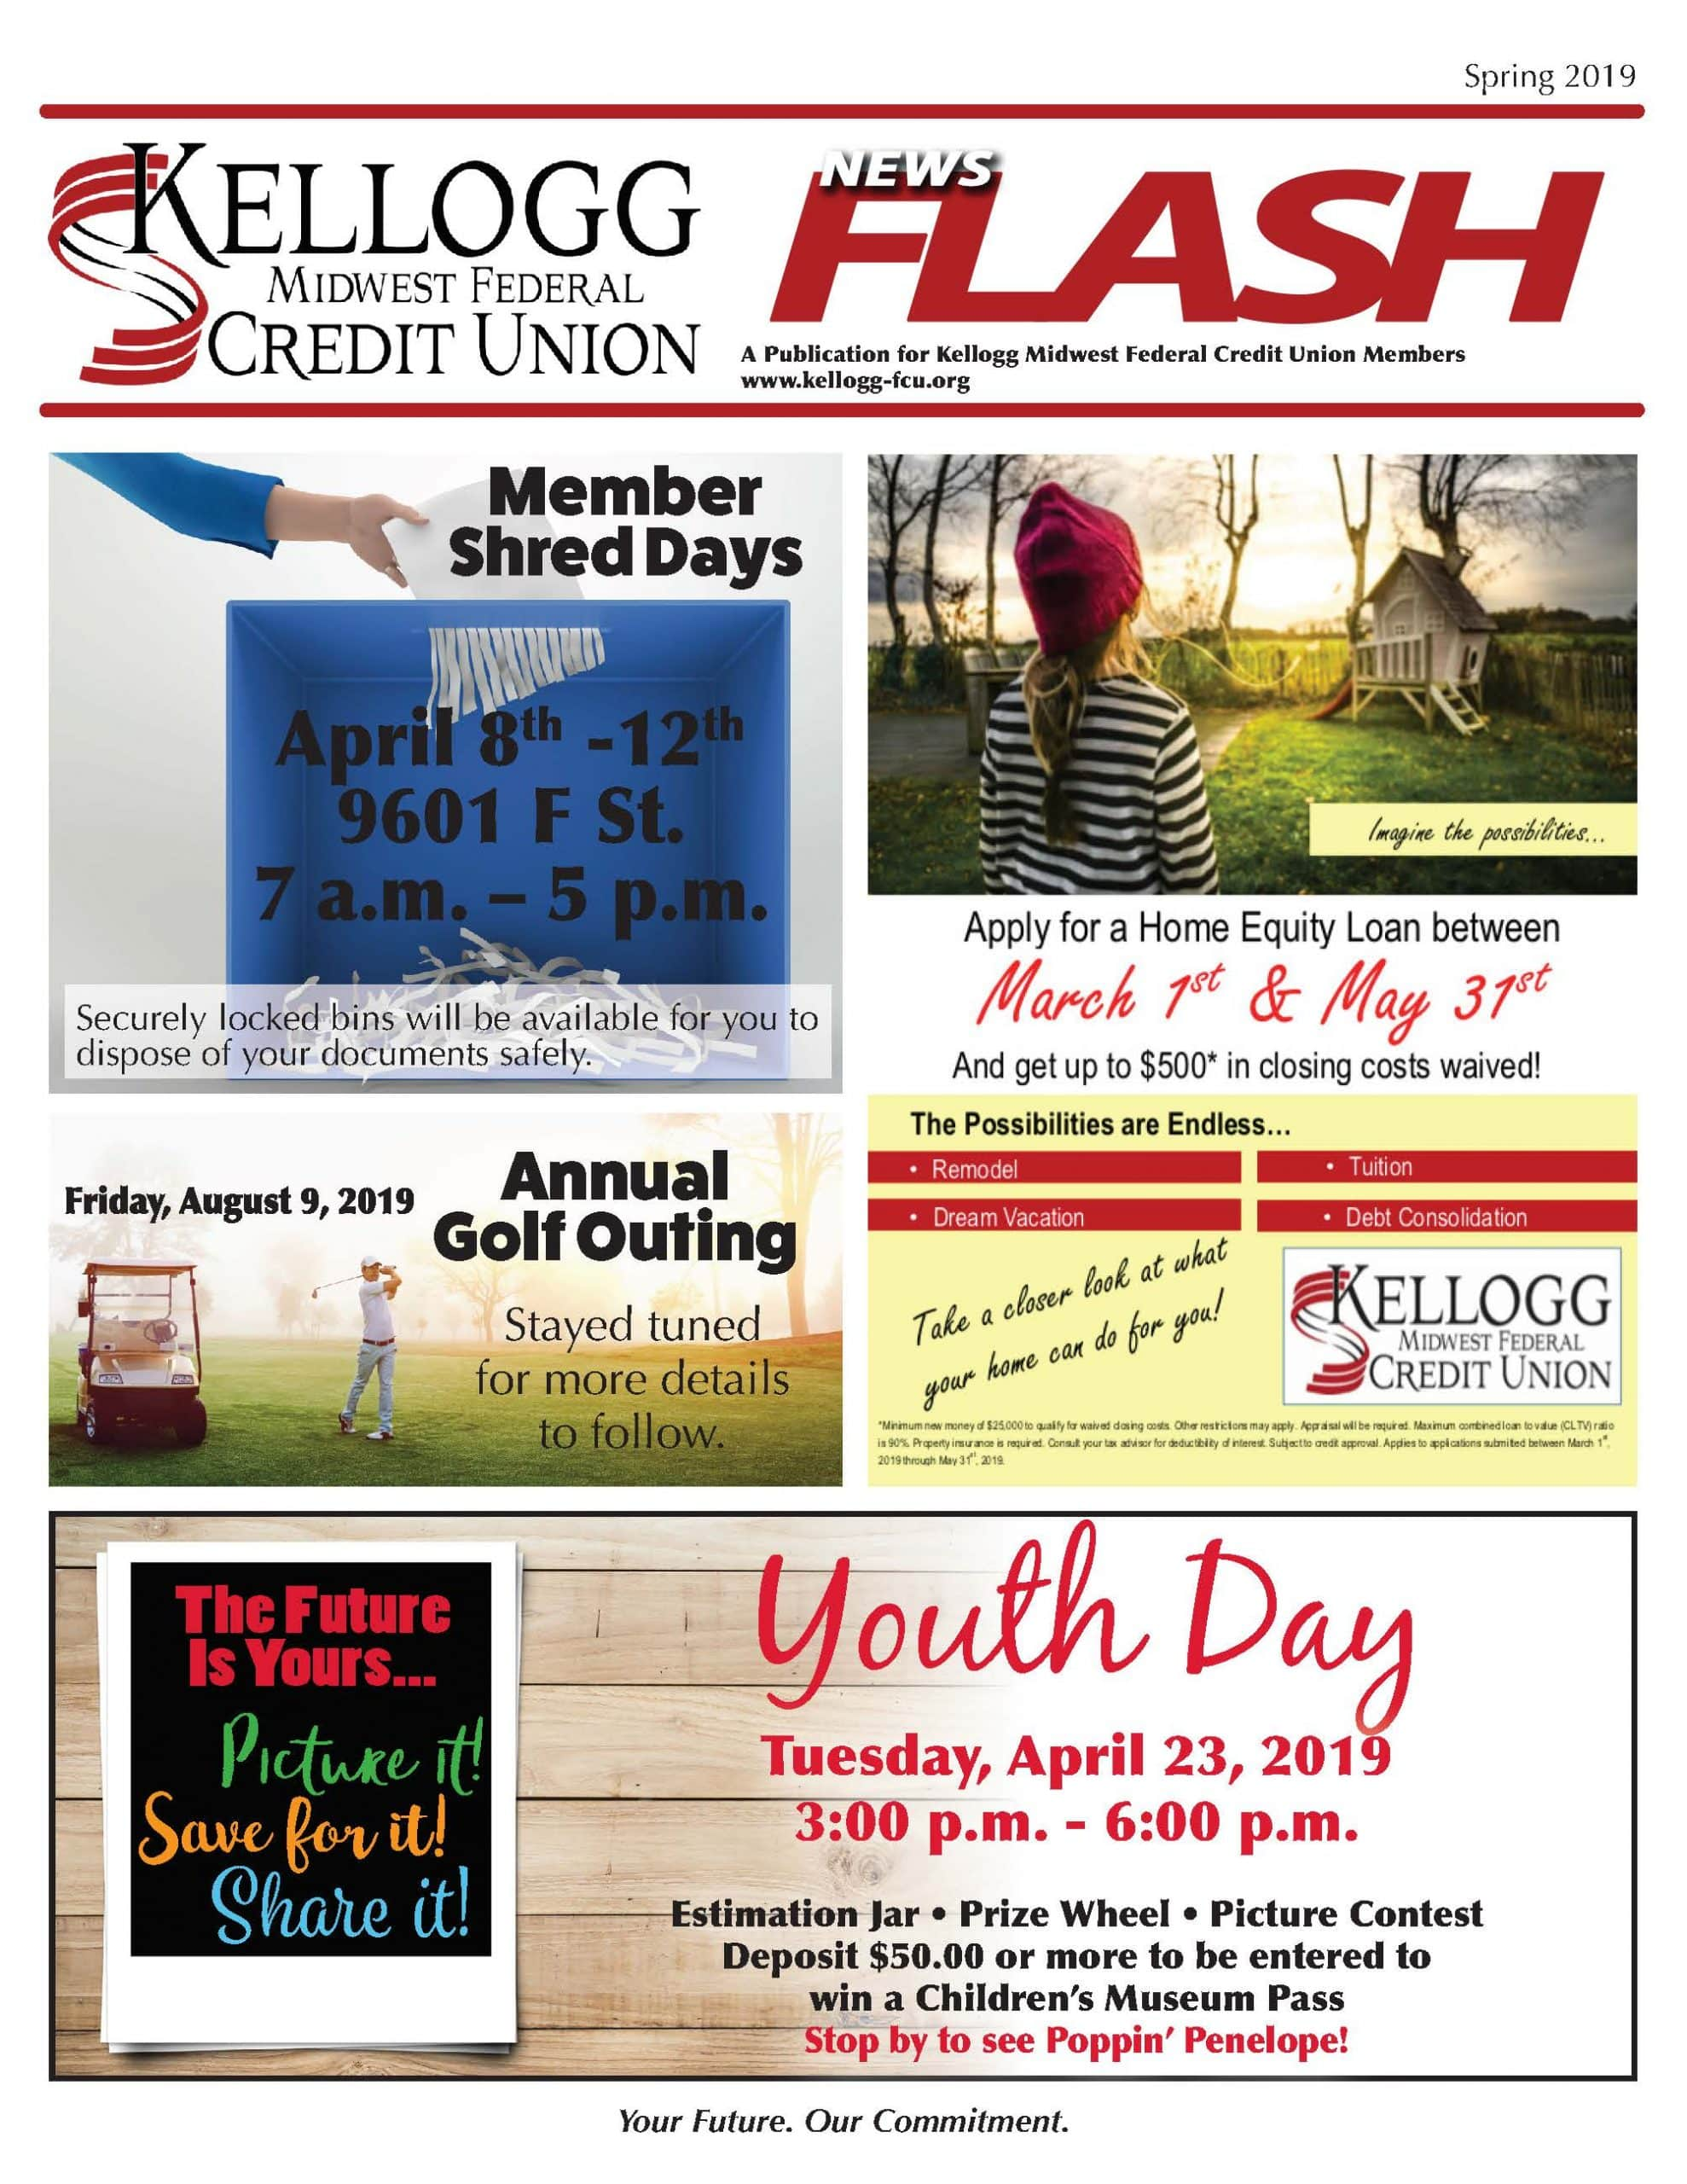 Kellogg News FLash Spring 2019